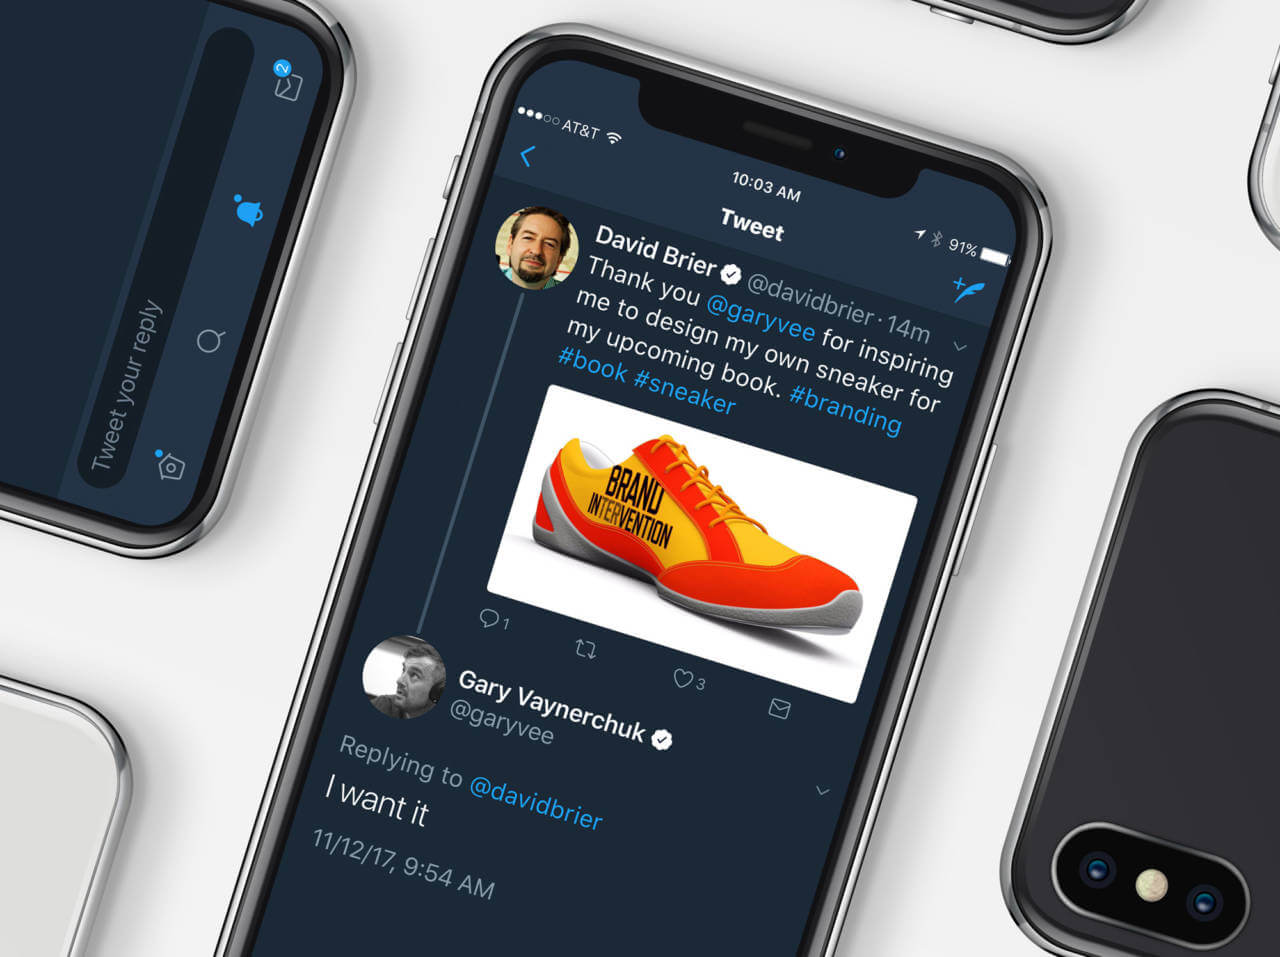 The Gary Vee Tweet and his Sneaker Box from David Brier